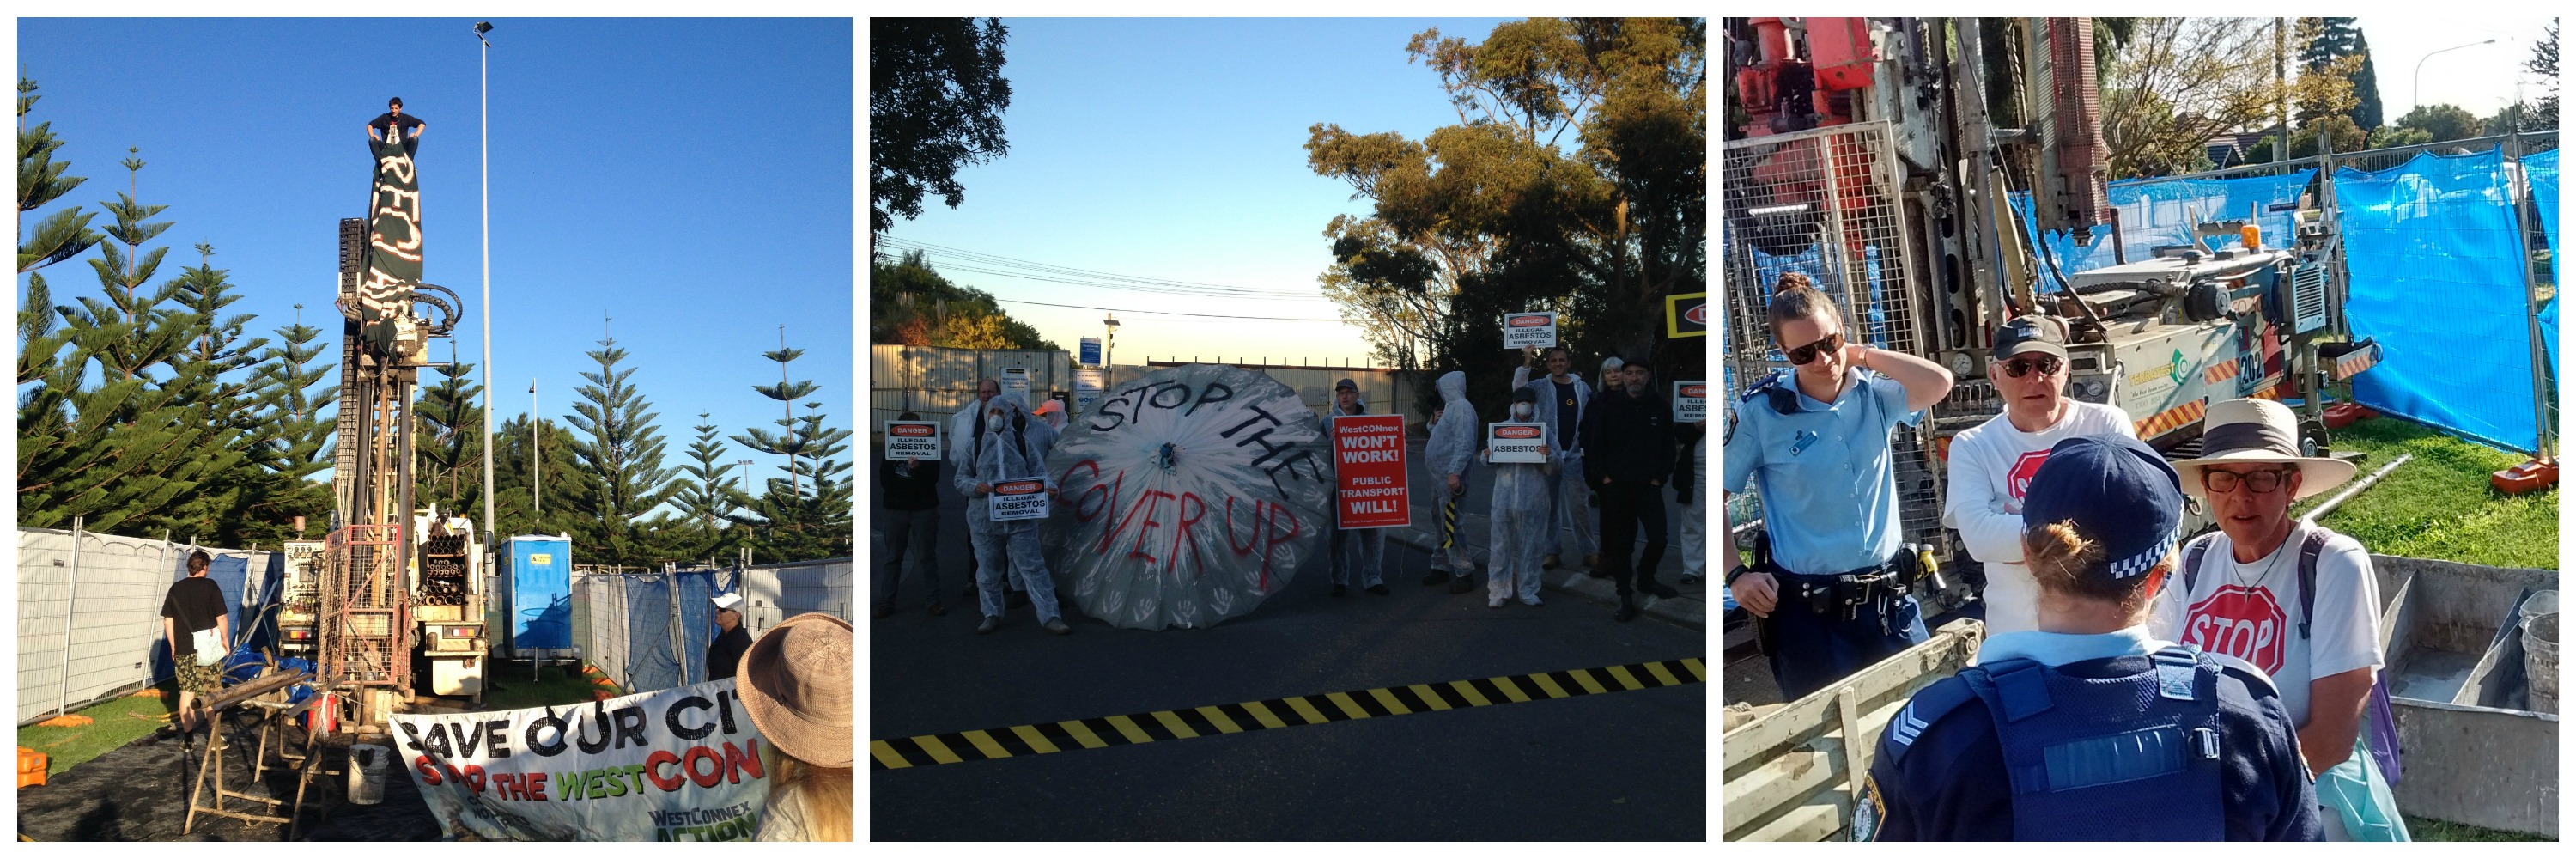 Direct actions to stop WestCONnex